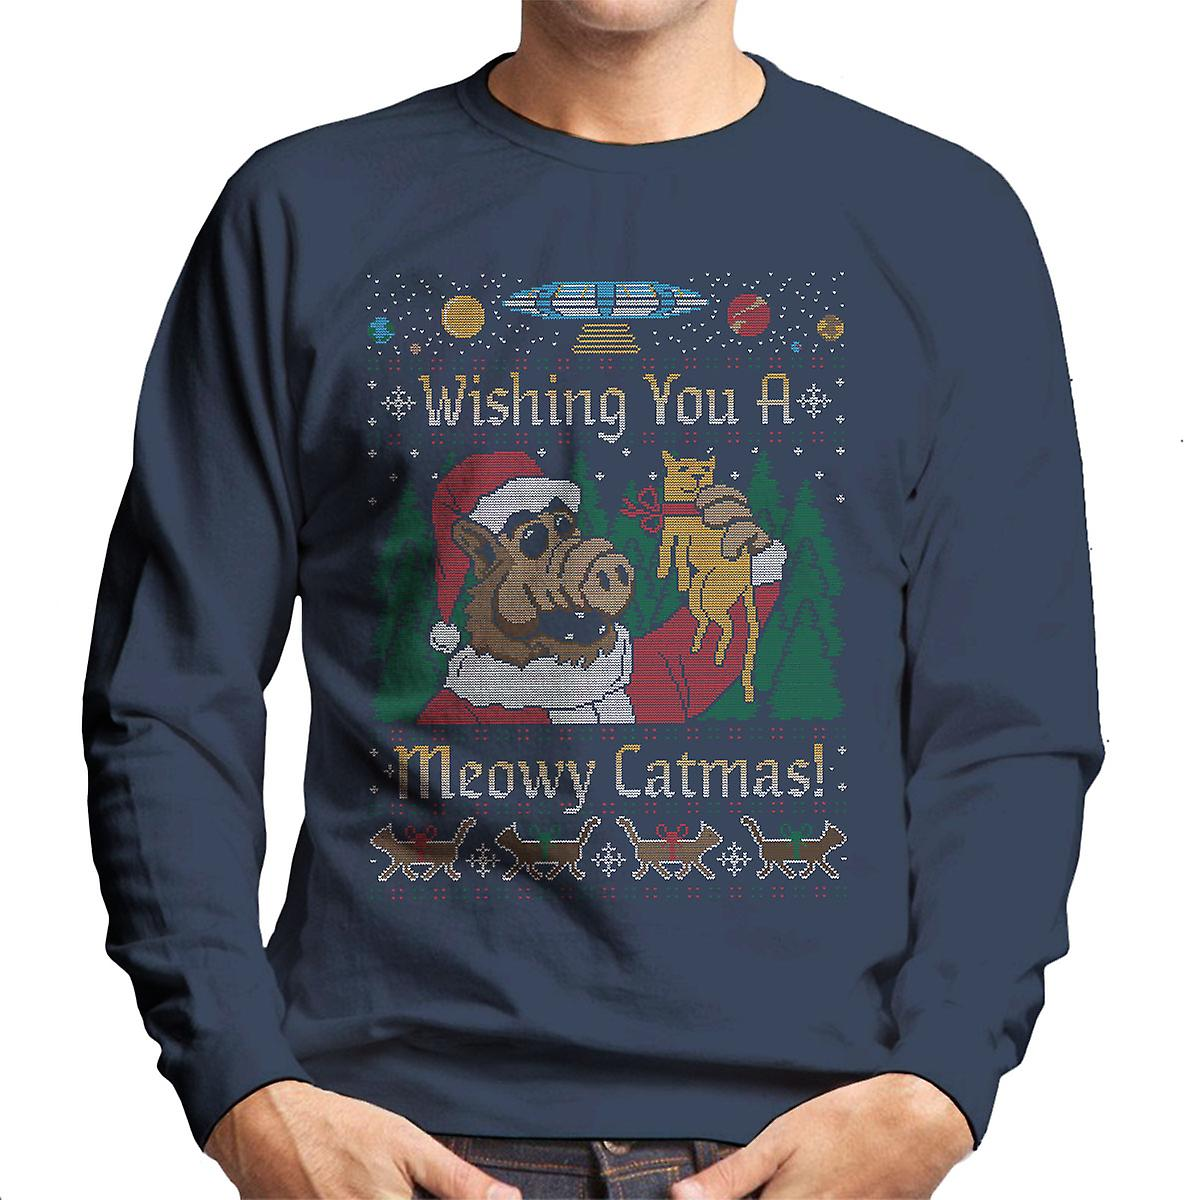 meowy catmas alf weihnachten stricken herren sweatshirt. Black Bedroom Furniture Sets. Home Design Ideas